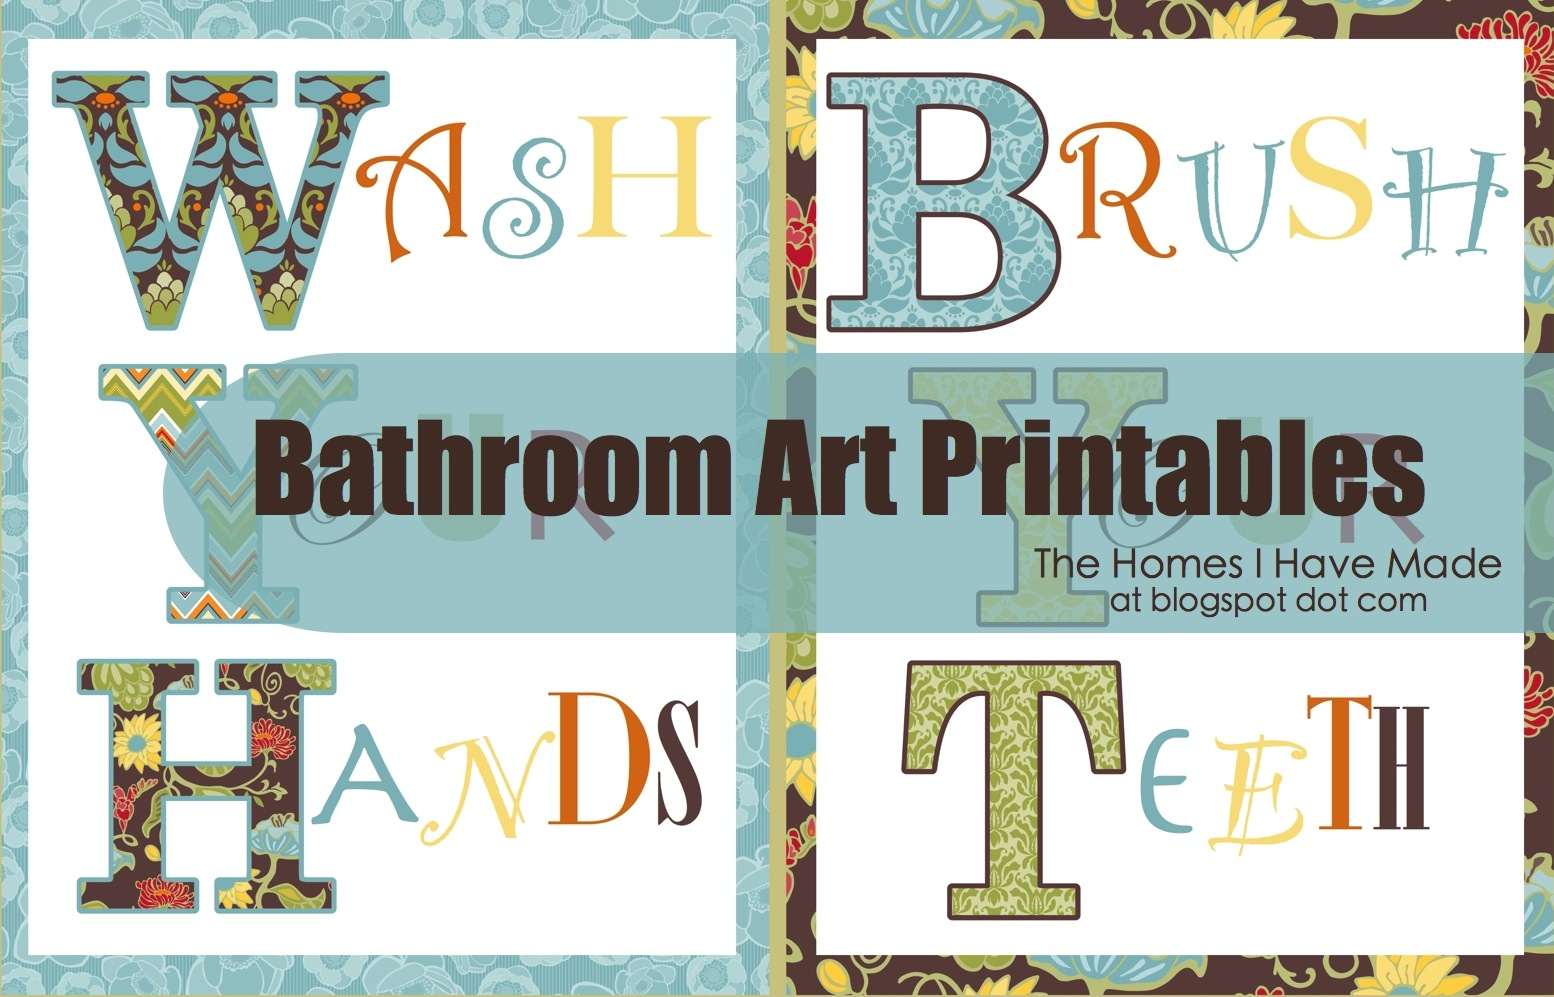 Stupendous image in free printable wall art for bathroom